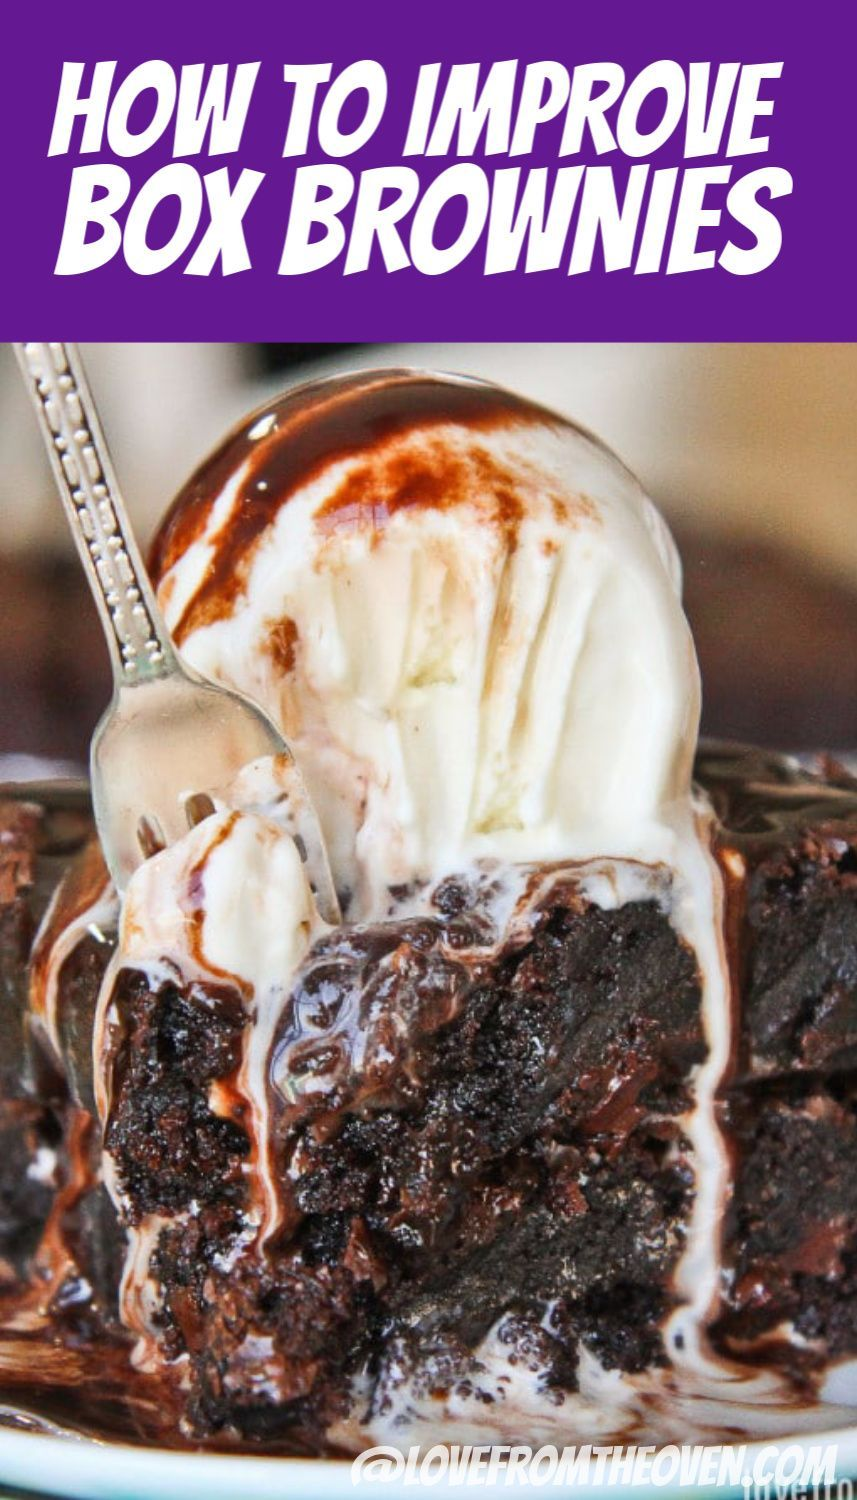 Take your box mix brownies to a whole other level with these super simple ticks and tricks. Serious